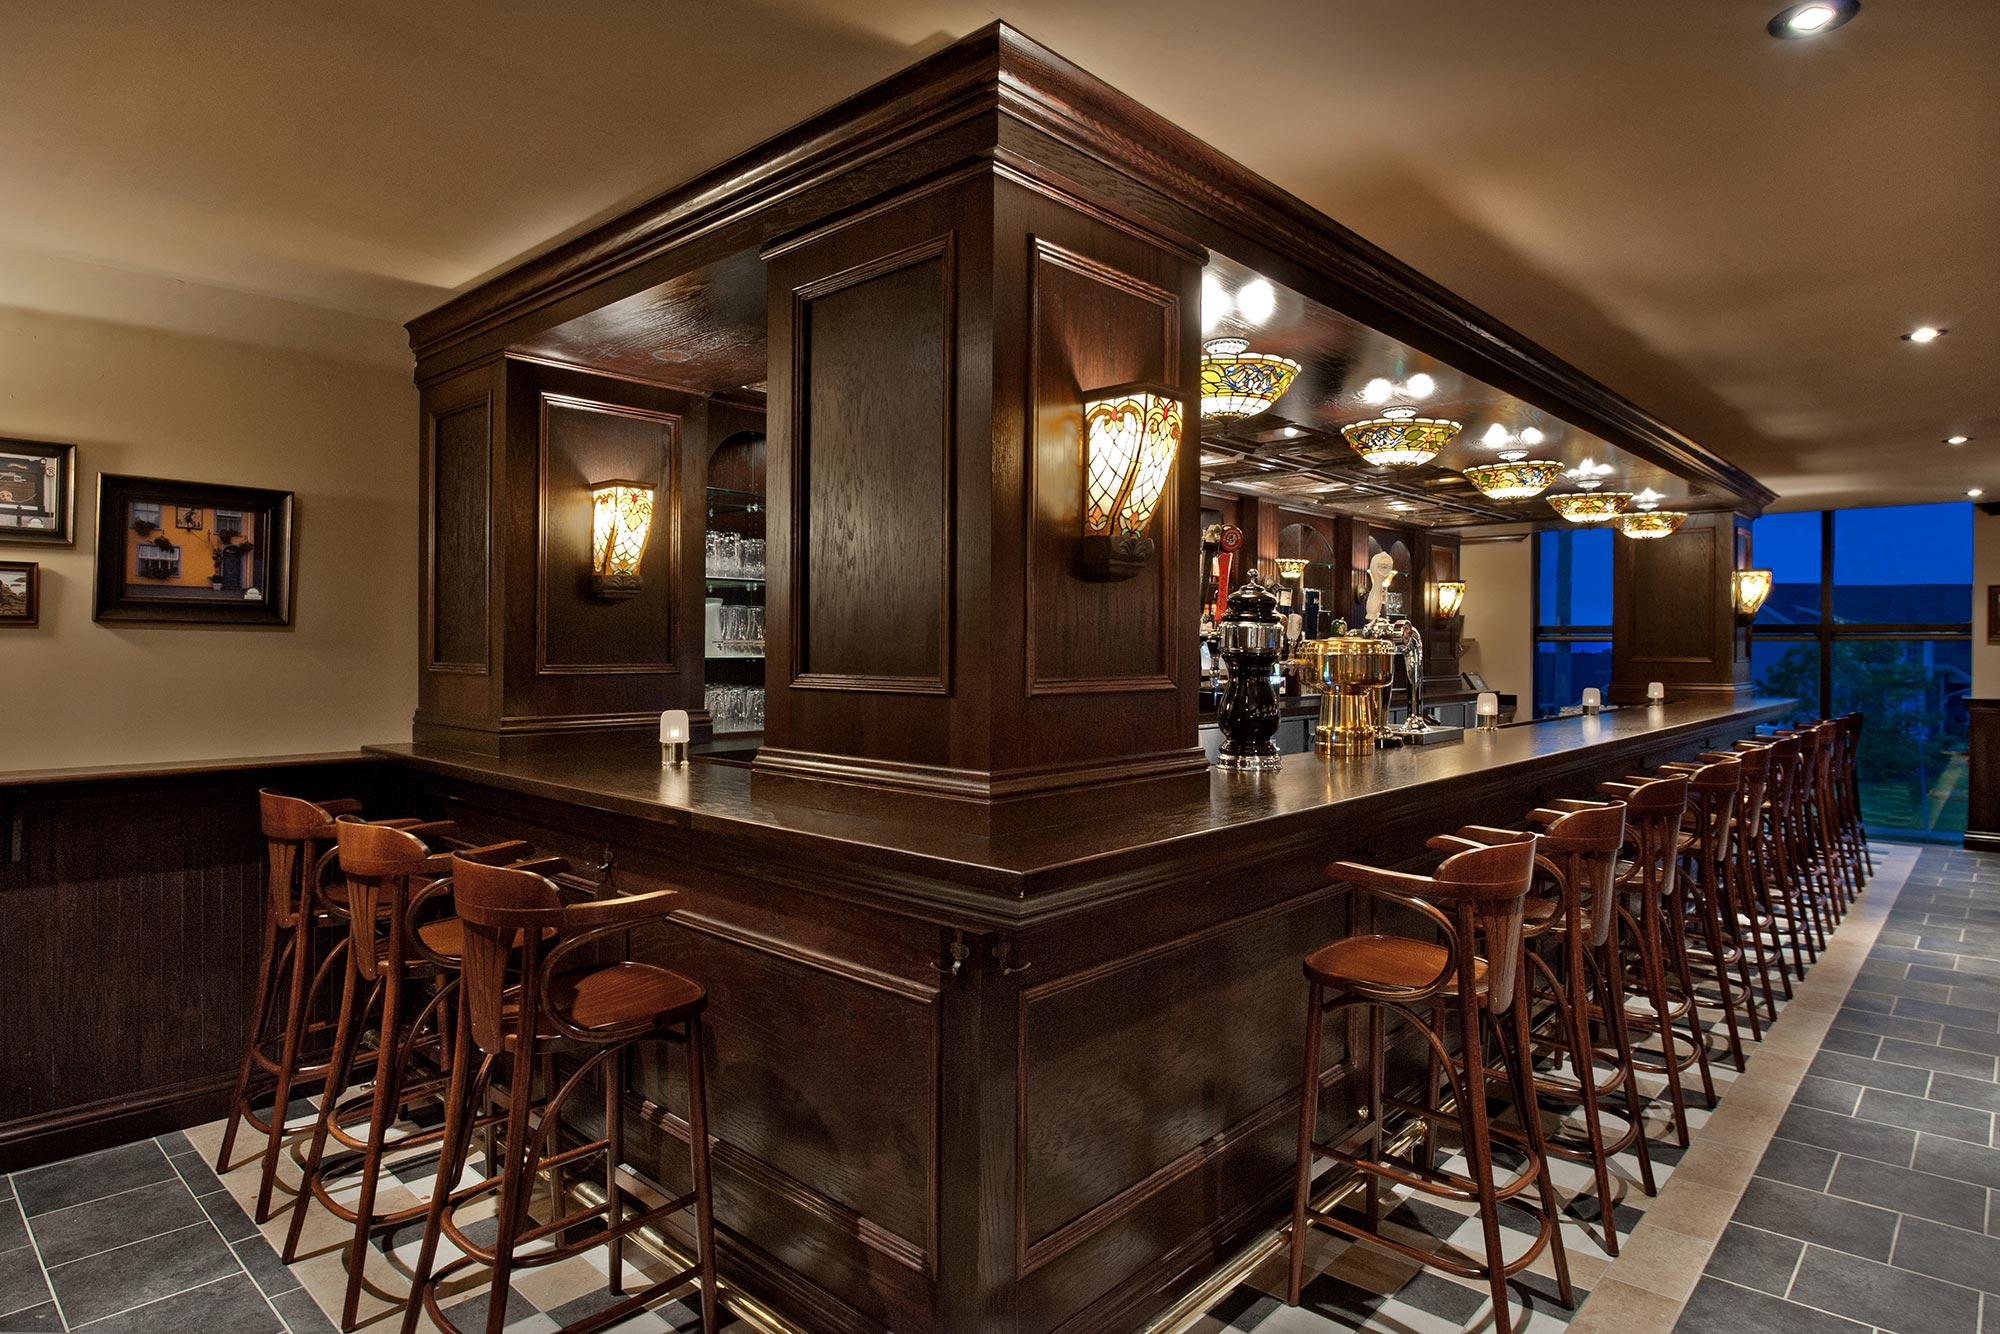 interior-design-restaurant-irish-pub-bar-lighting.jpg